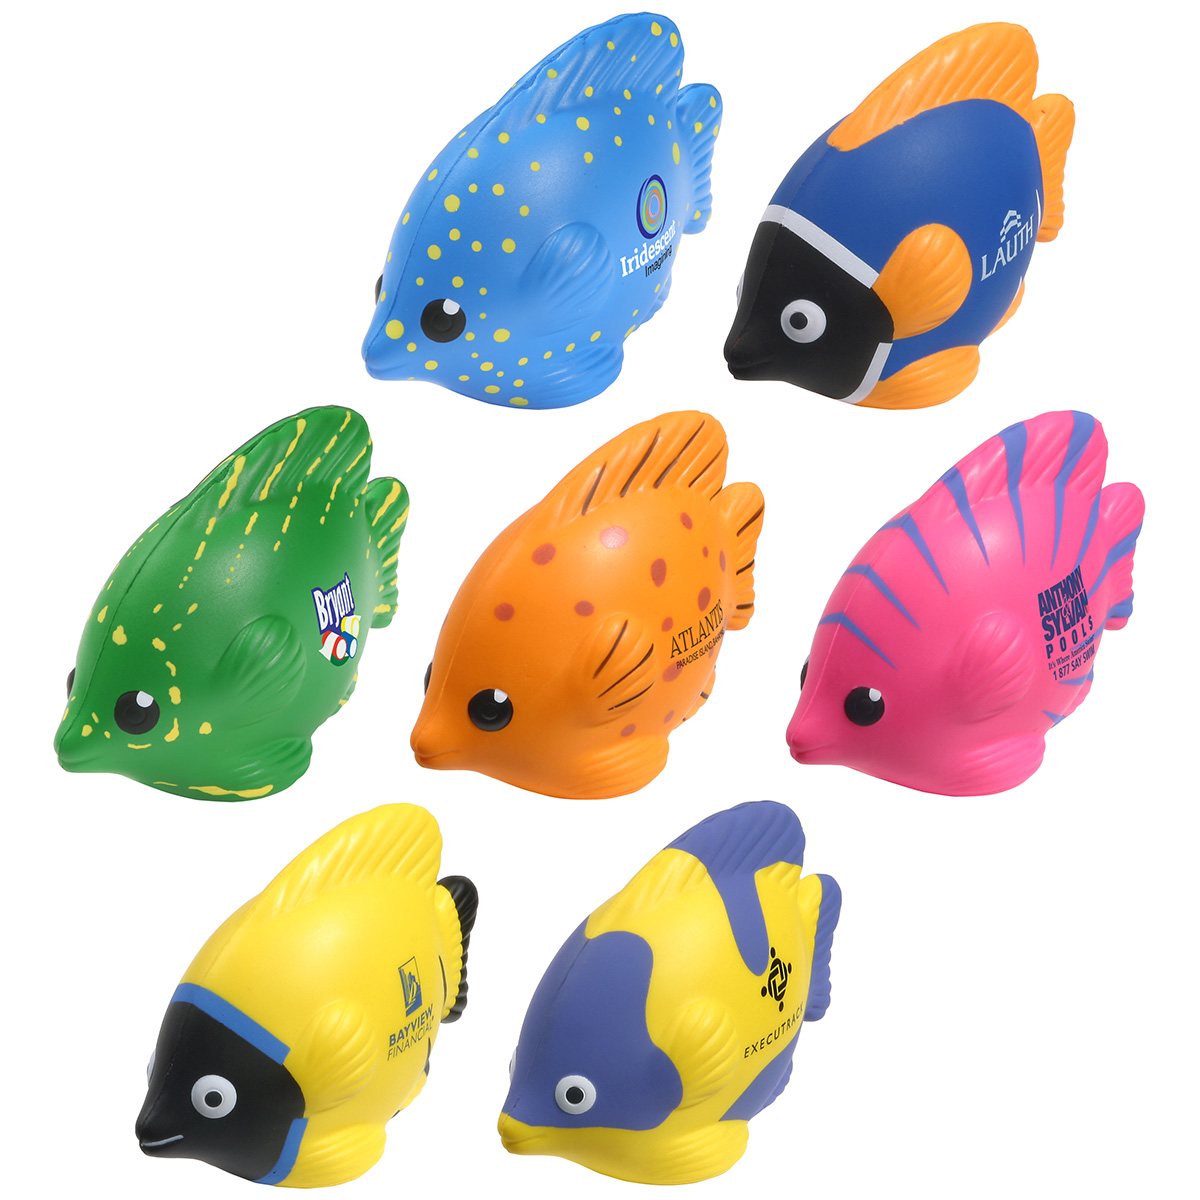 Tropical Fish Stress Reliever, LAA-TF09 - 1 Colour Imprint